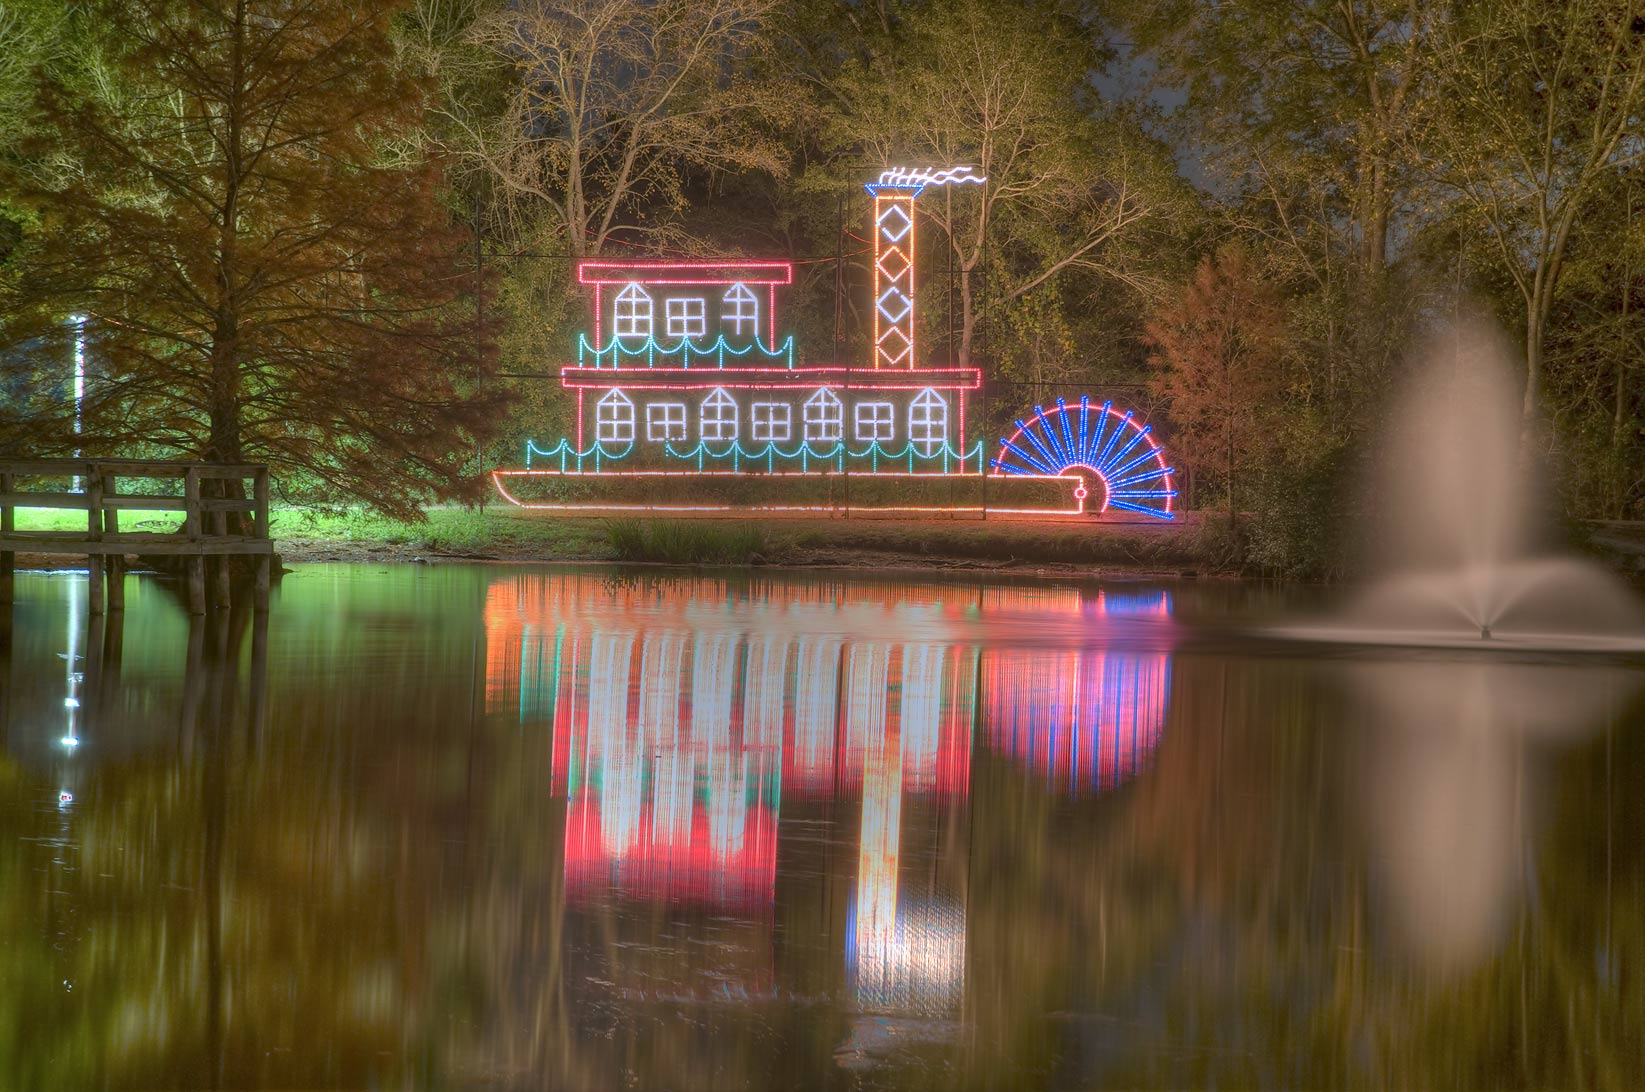 Central Park College Station Christmas lights - search in pictures